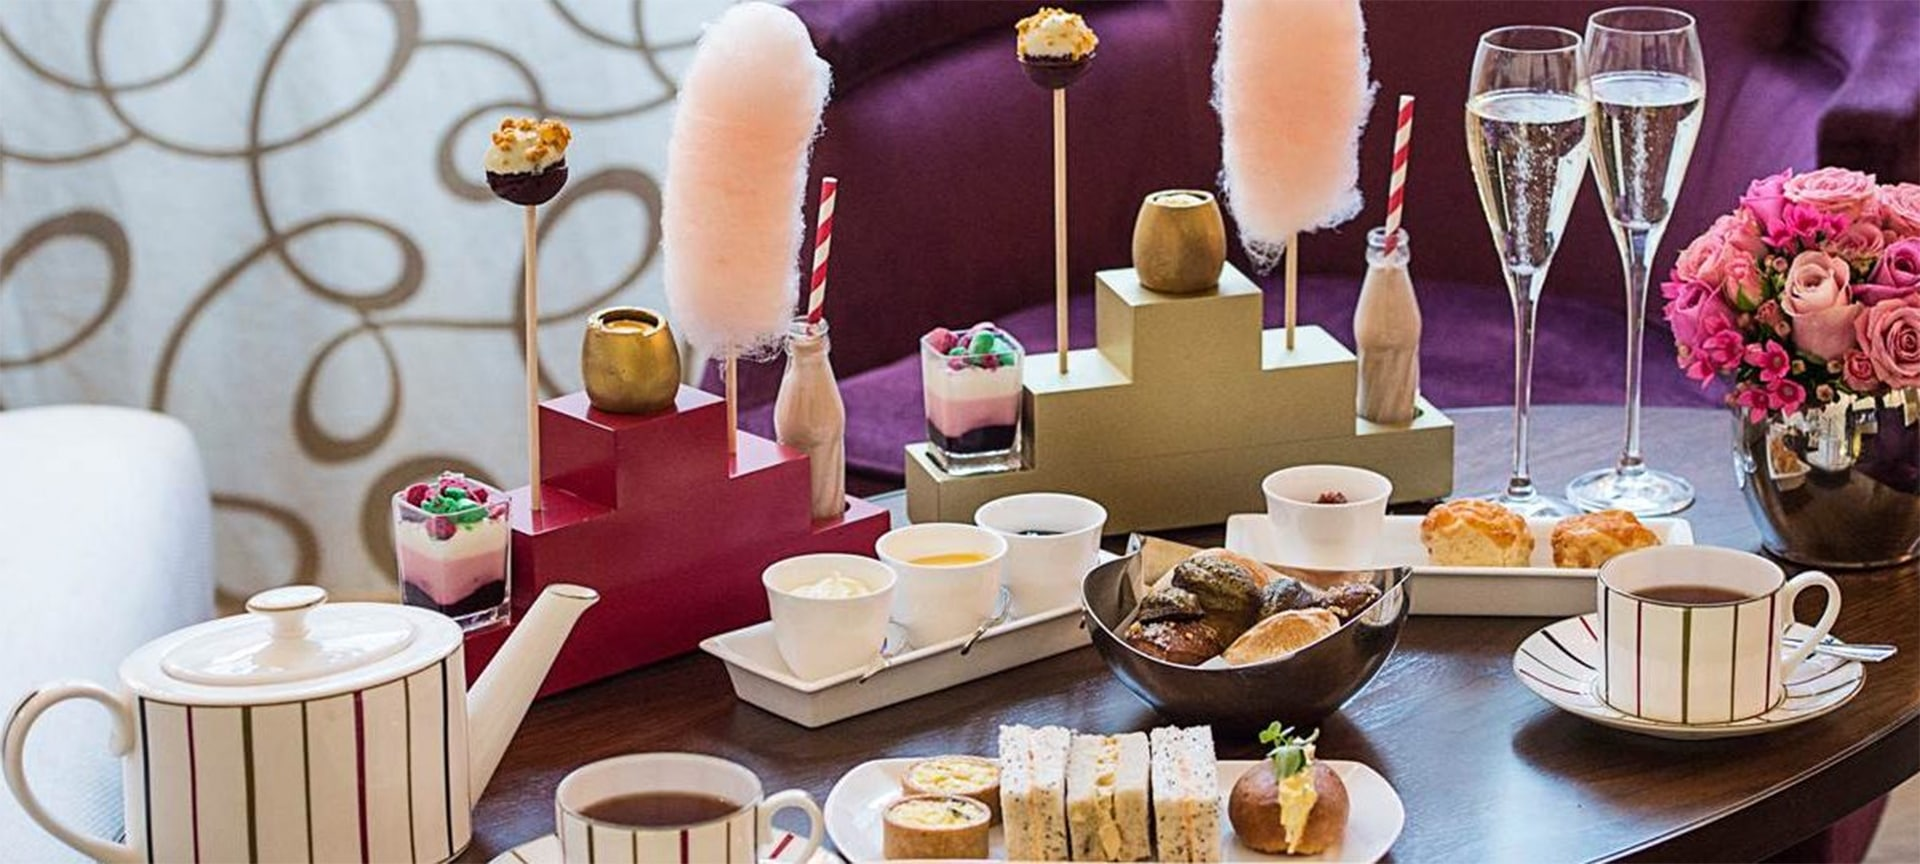 A treat for children and grown-ups alike – no golden ticket necessary. Based on the beloved Roald Dahl tale, this tea includes whimsical treats like homemade candy floss, blueberry and white chocolate cake pops, and bubble gum panna cotta. Be sure to save room for the pièce de résistance – a golden chocolate egg filled with vanilla cheesecake and mango.